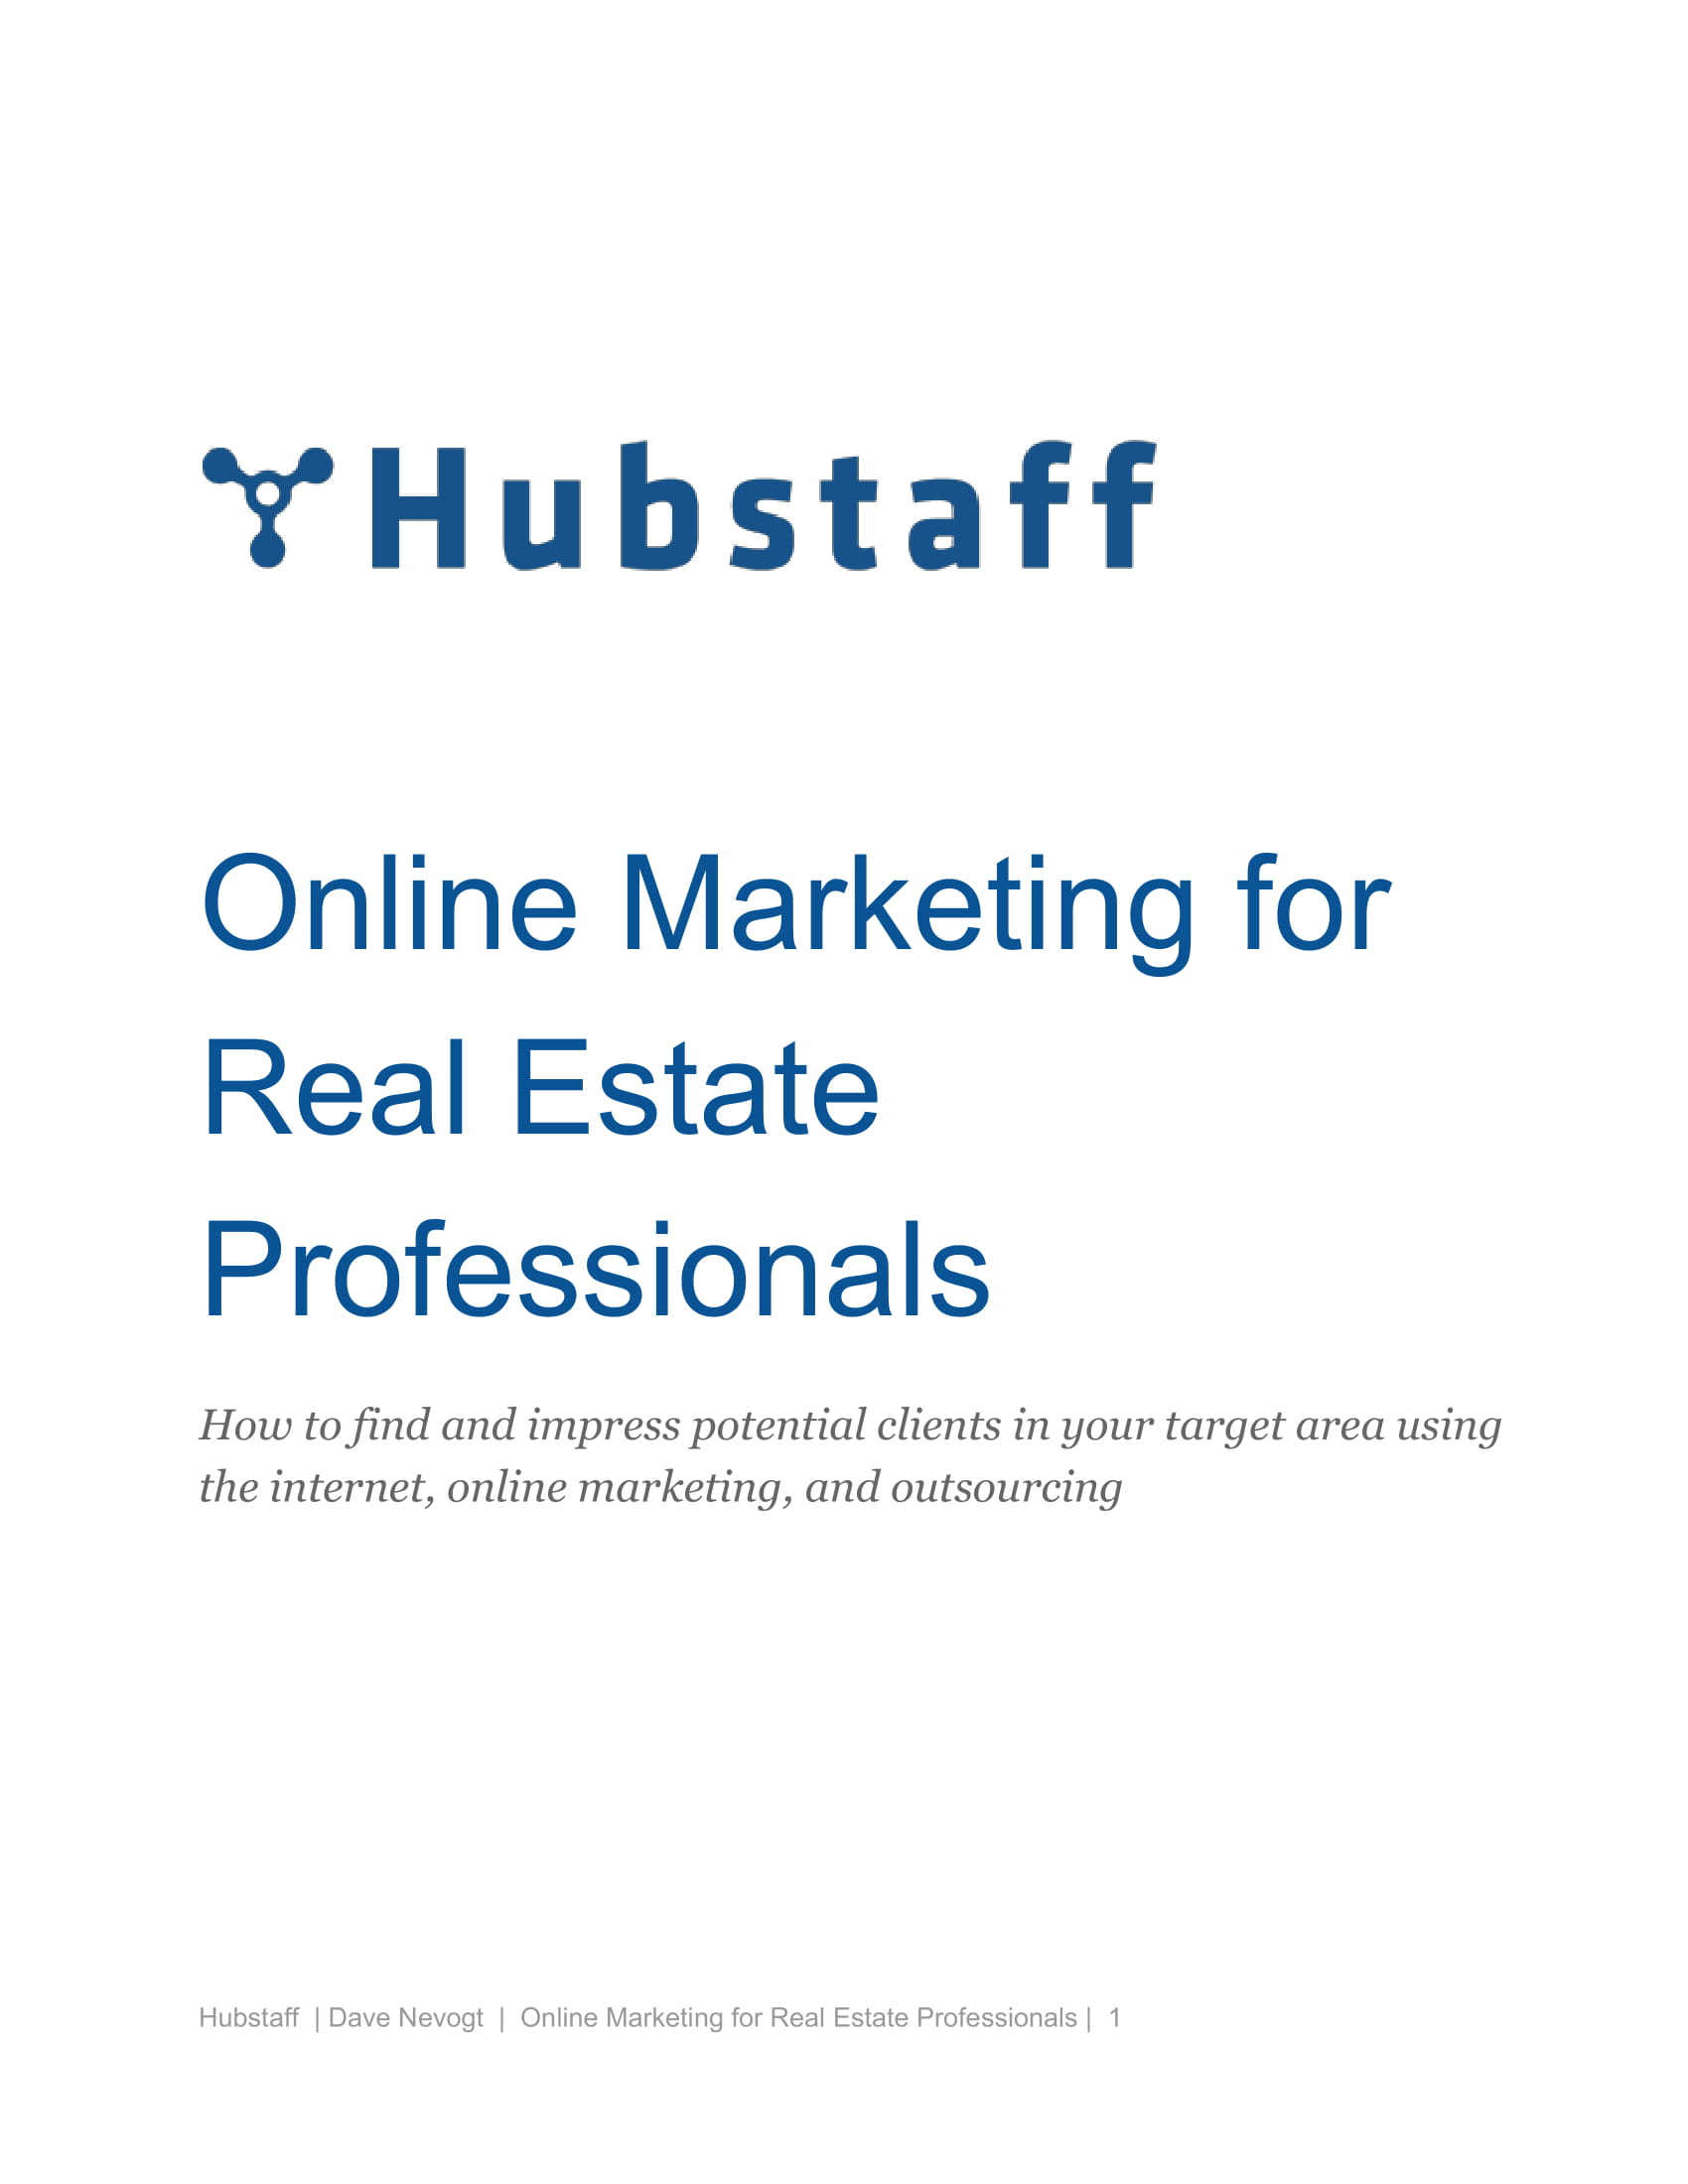 online marketing plan for real estate professionals example 01